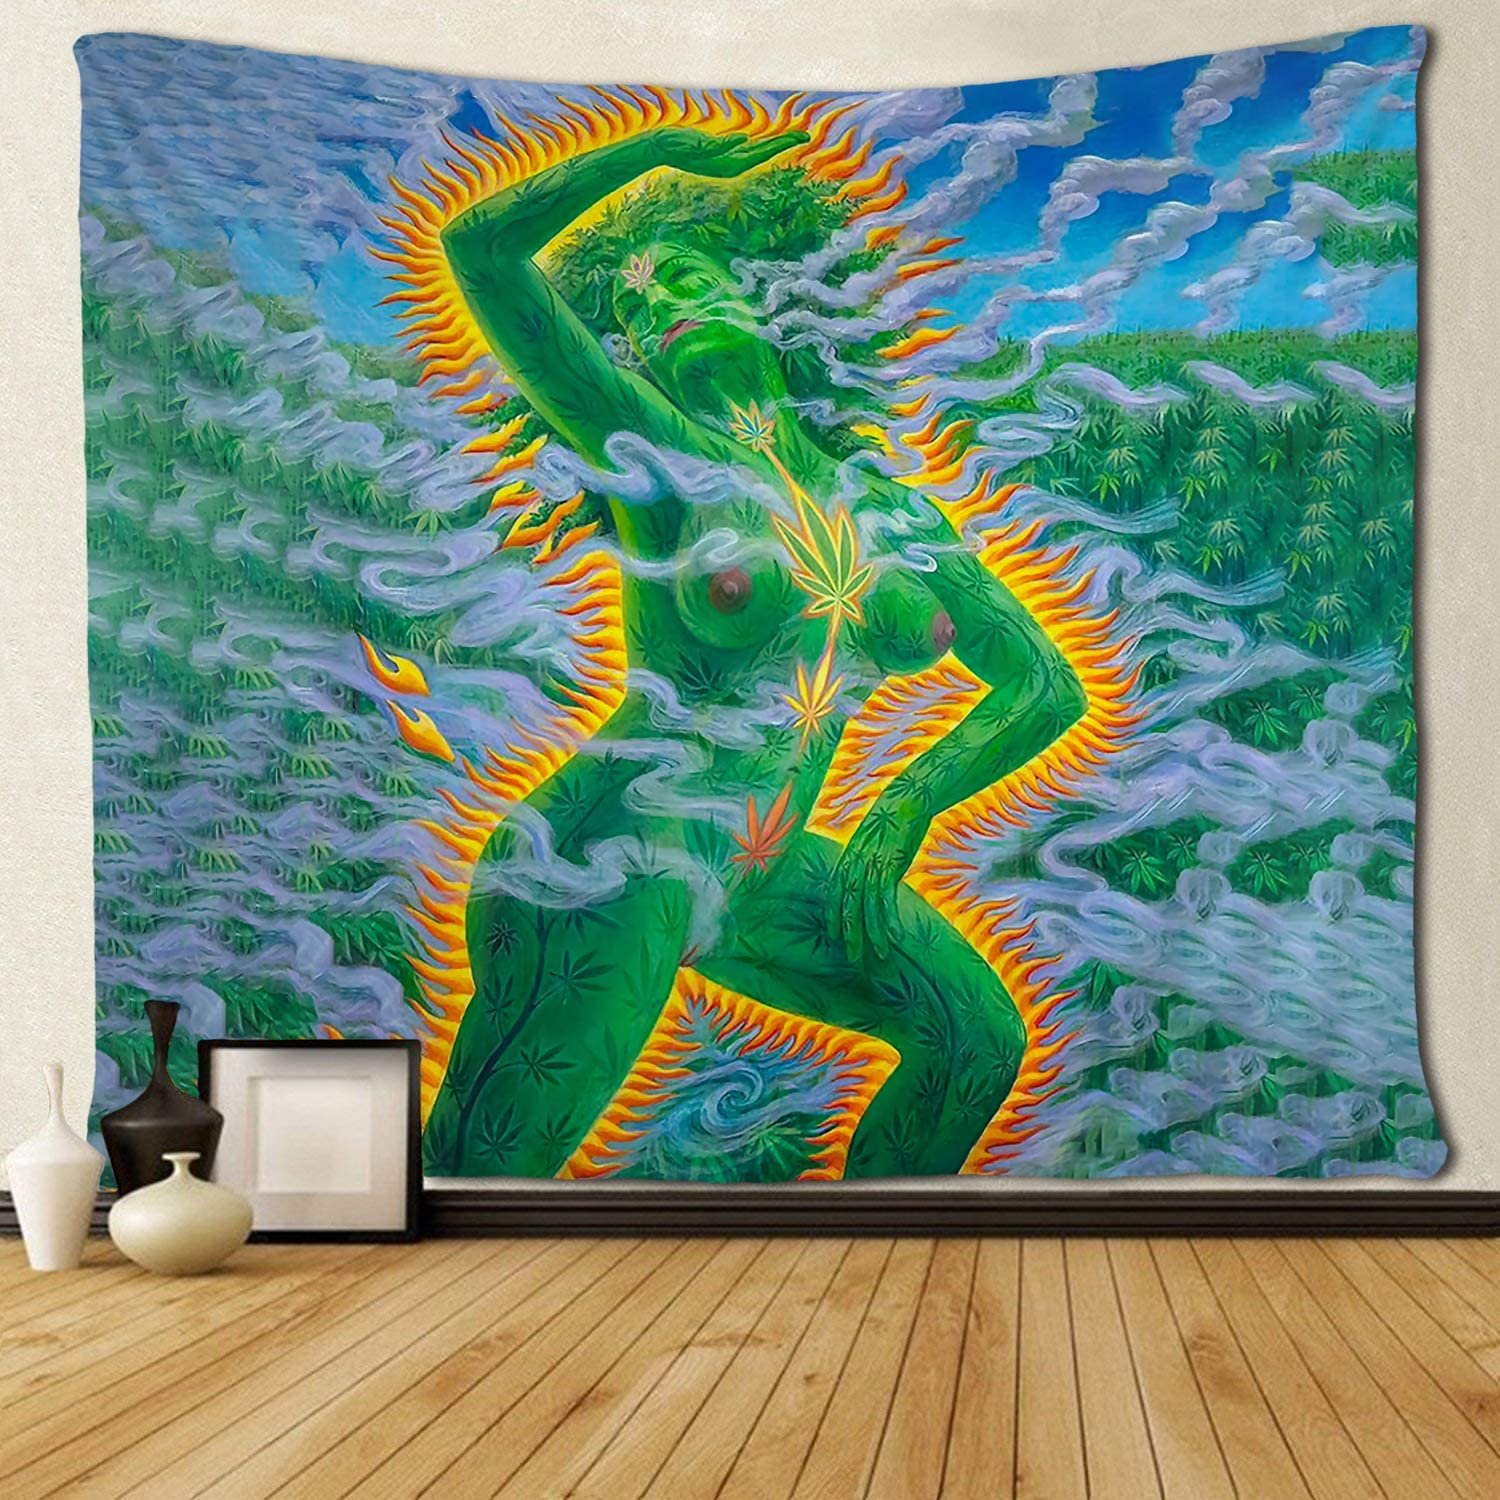 SARA NELL Magical Trippy Psychedelic Tapestry Sexy Naked Woman with Green Marijuana Leaf Weed Tapestries Wall Hanging Hippie Art 50x60 Inches Home Decoration Dorm Decor for Living Room Bedroom